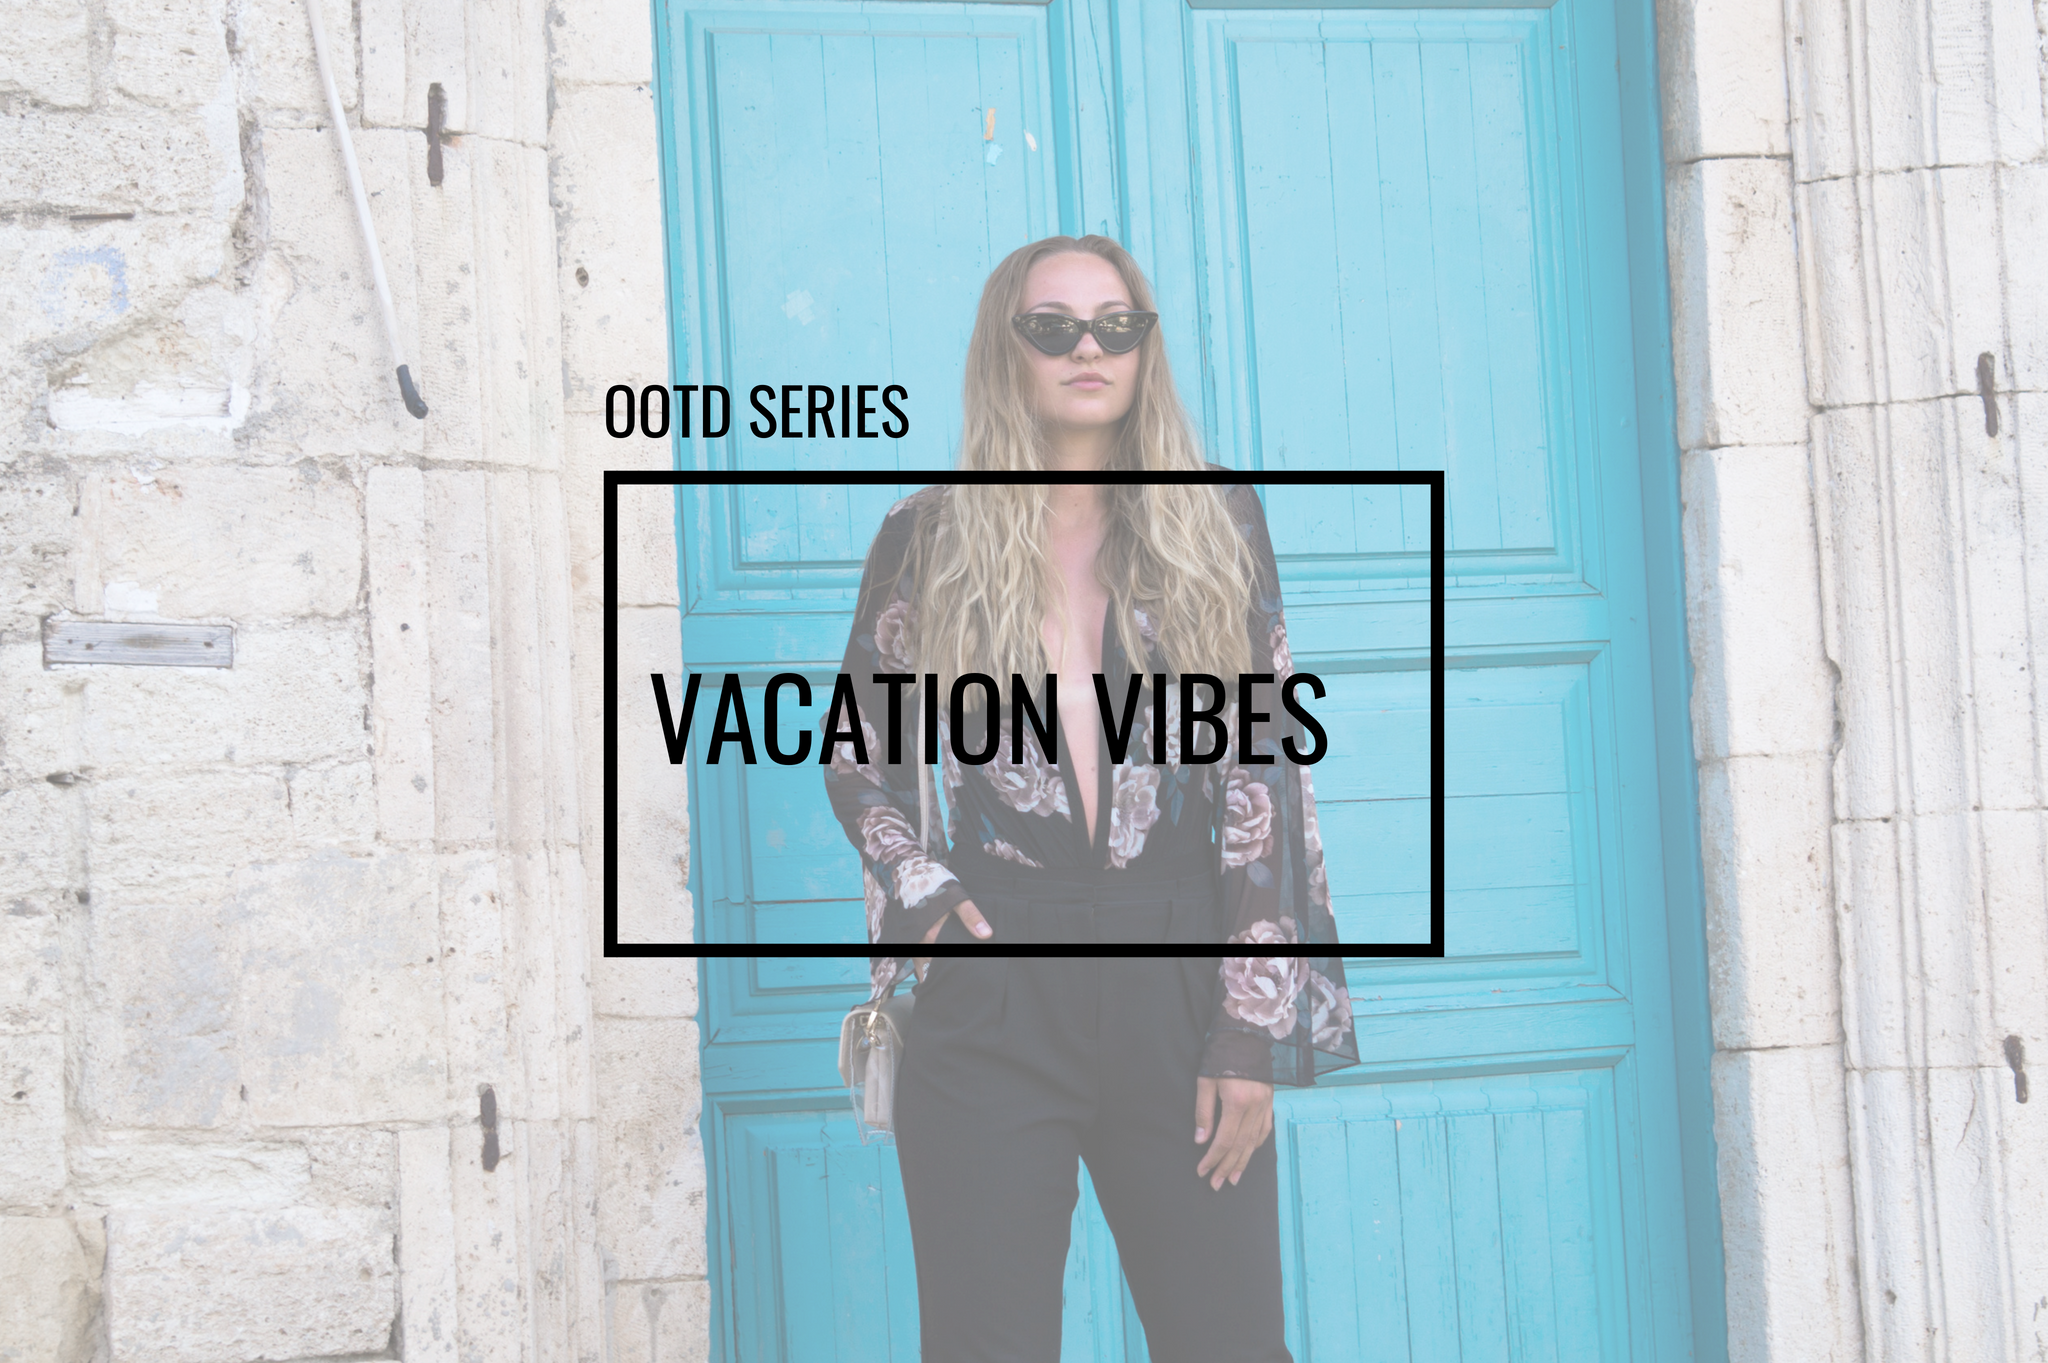 vacation vibes ootd fashion what to wear on vacation greece summer outfit summer fashion